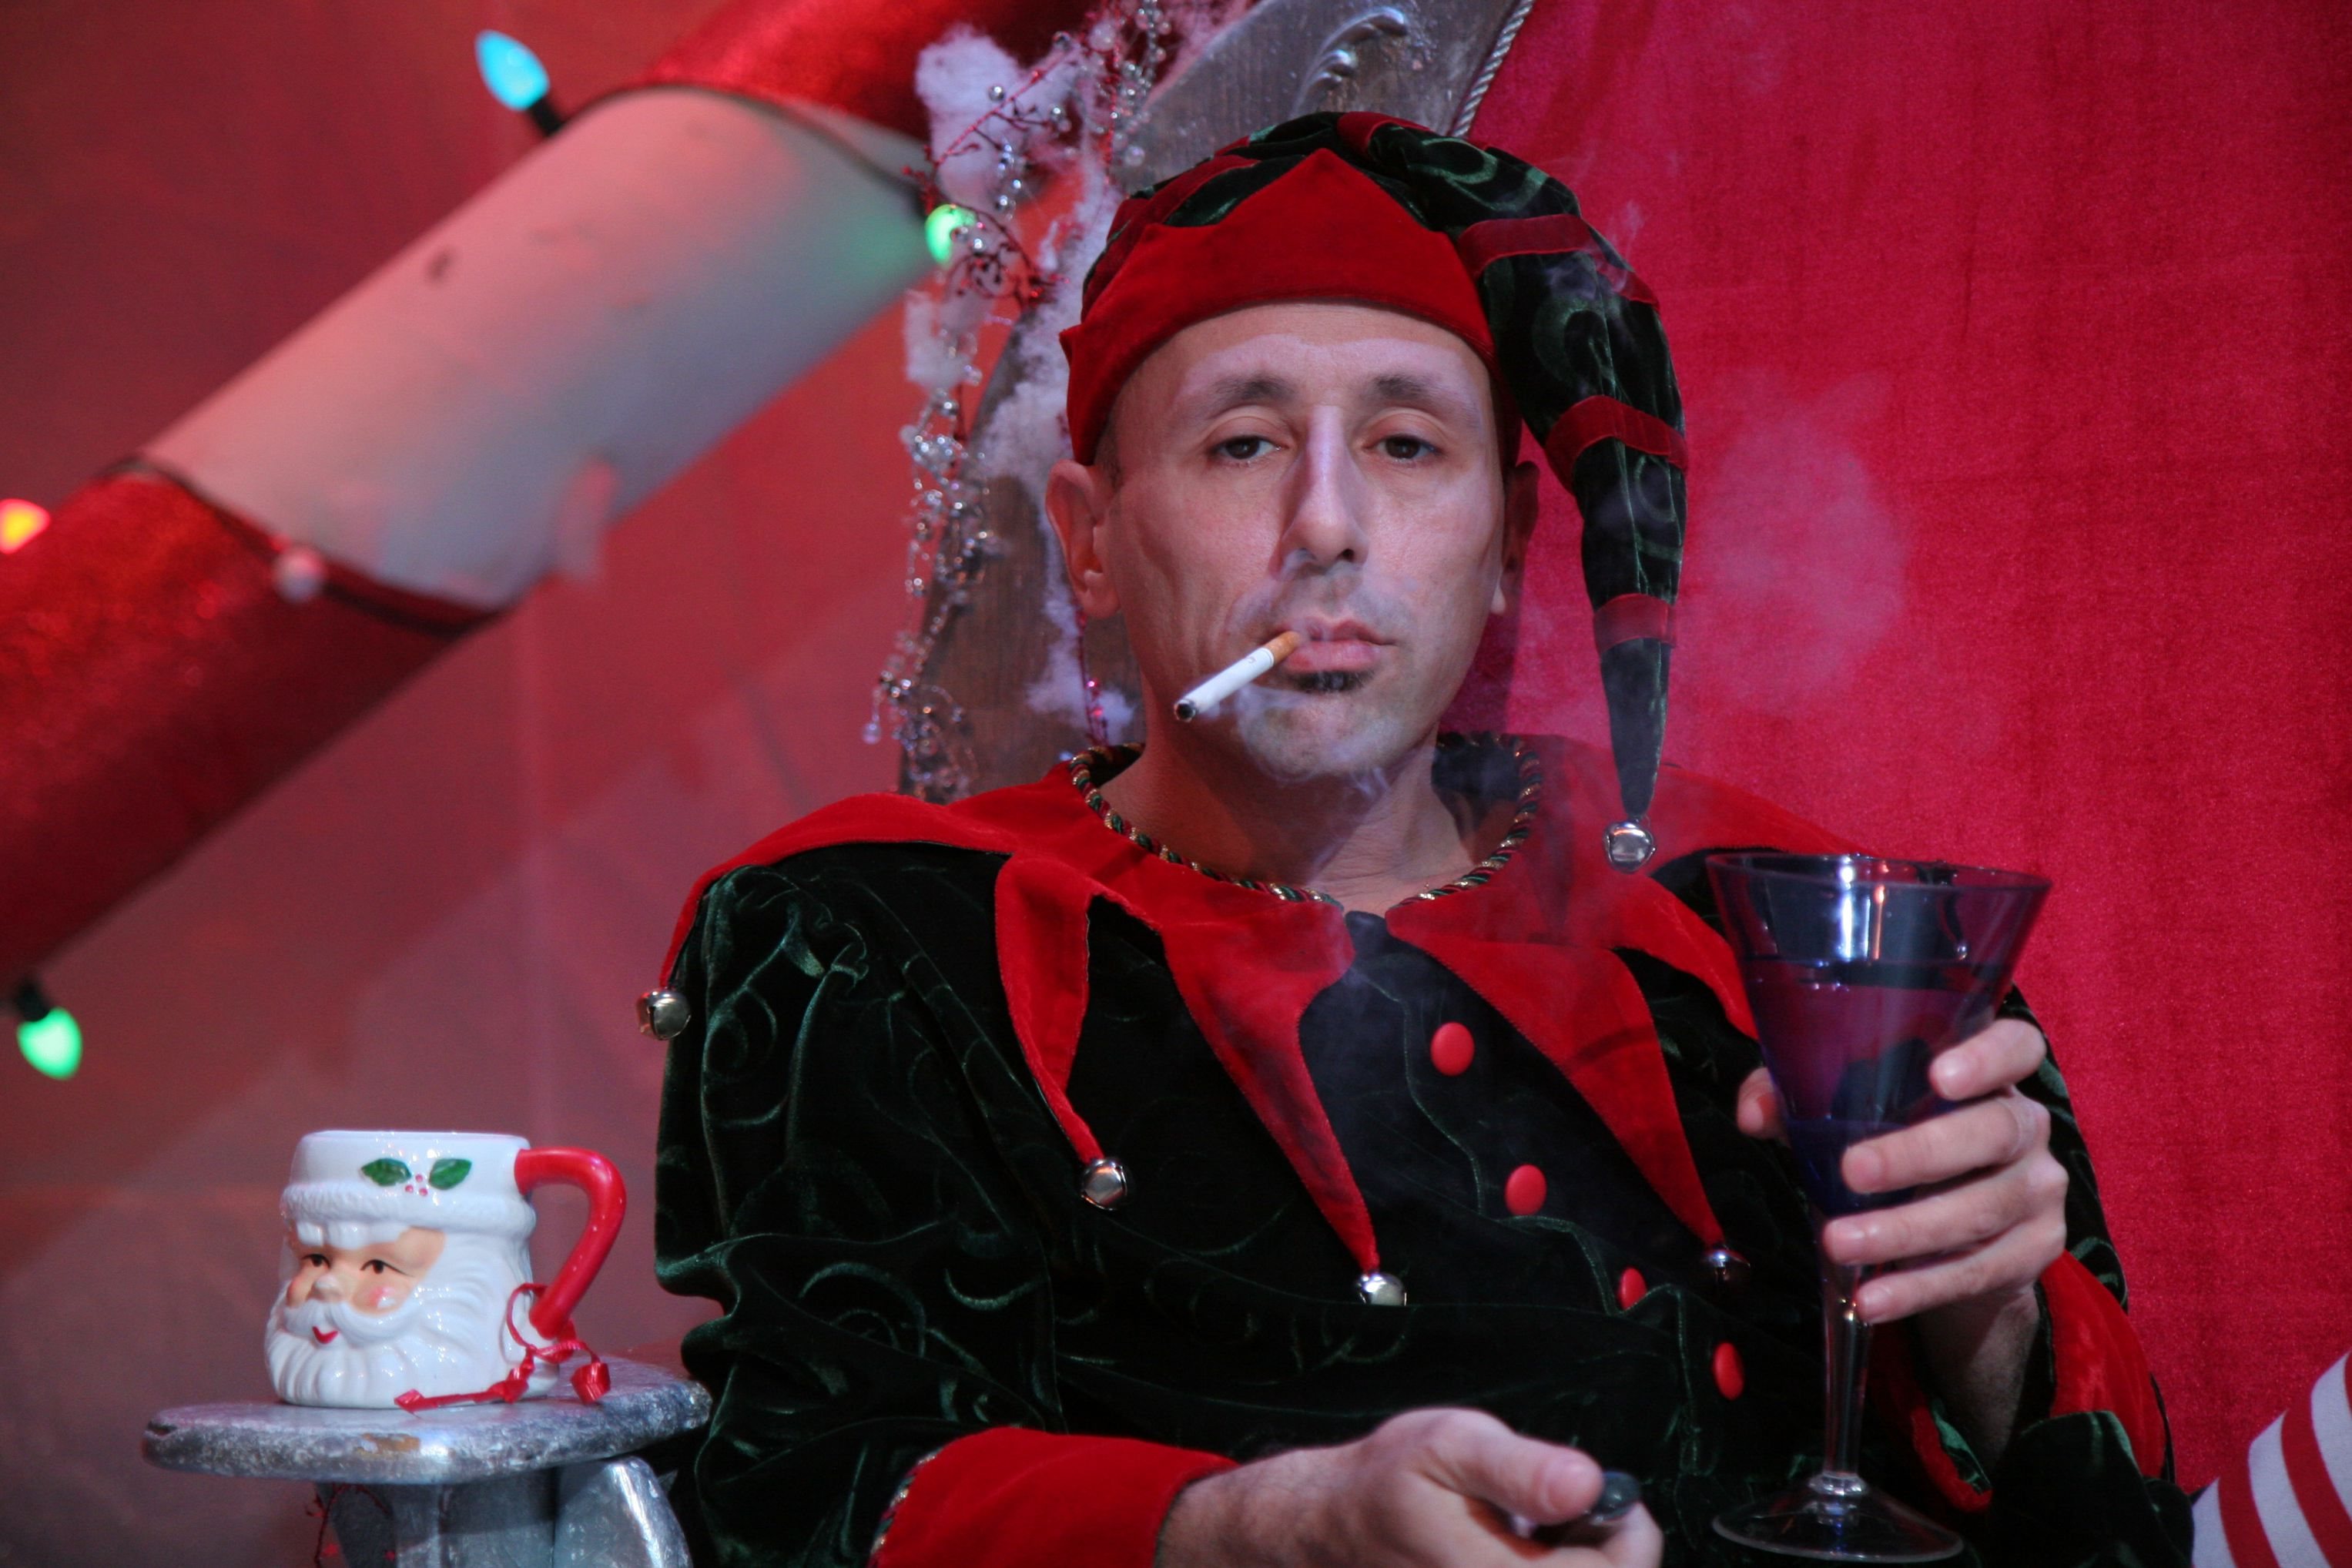 its fifth year running theater wits one man adaptation by joe mantello of the classic david sedaris tale is starting to wear a bit thin but luckily the - David Sedaris Christmas